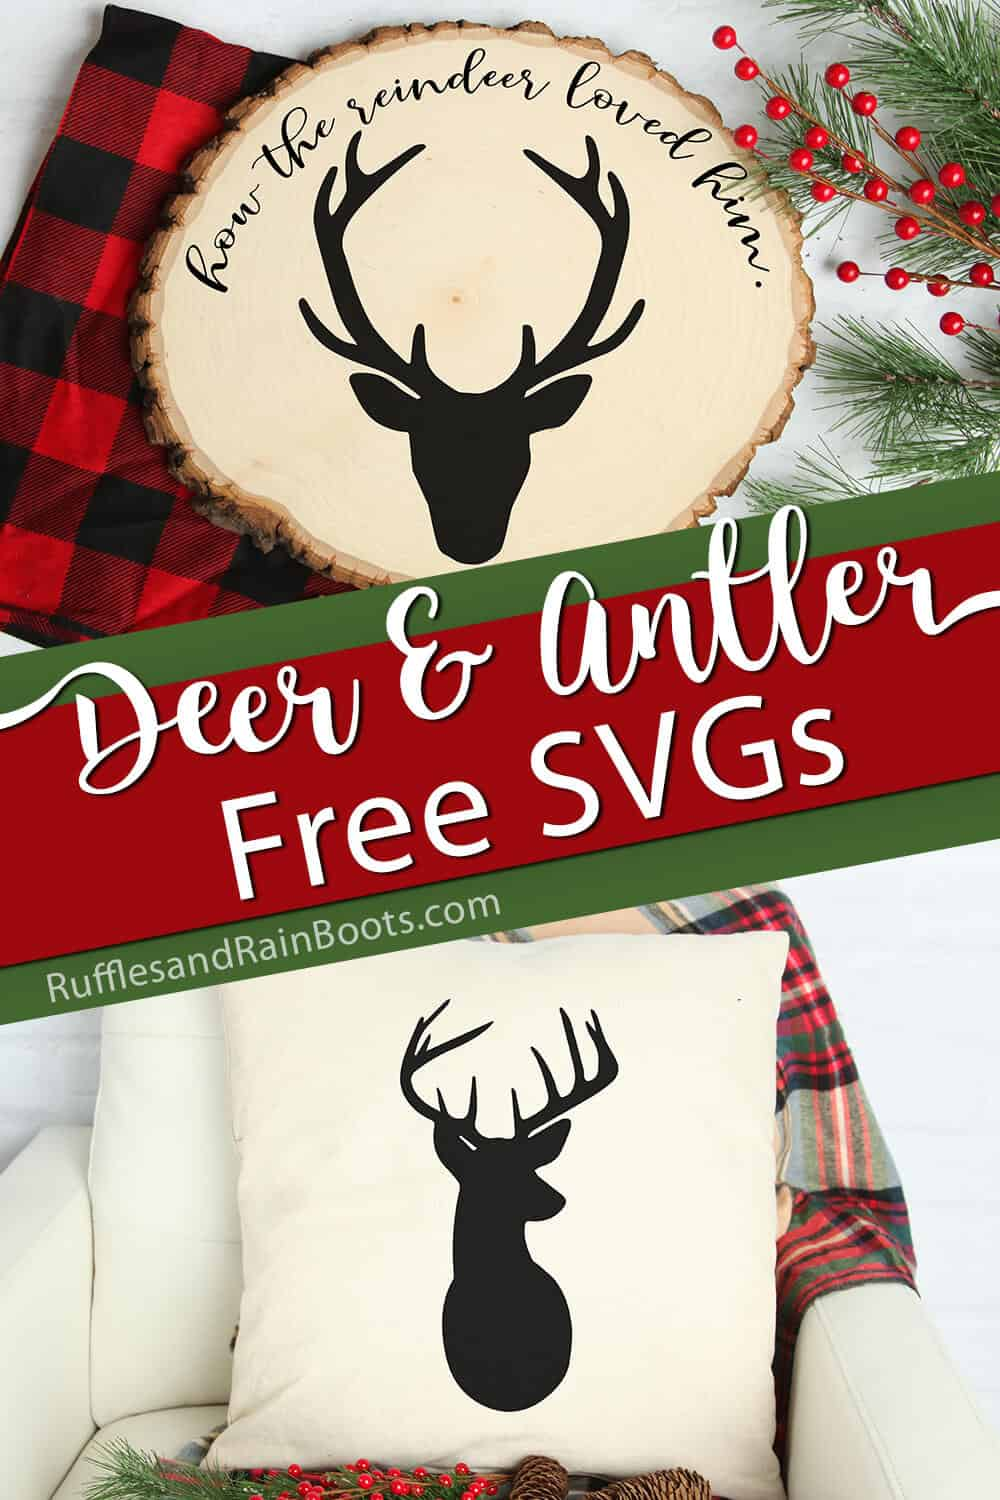 photo collage of deer cut files on a sign and pillow with text which reads deer and antler free svgs